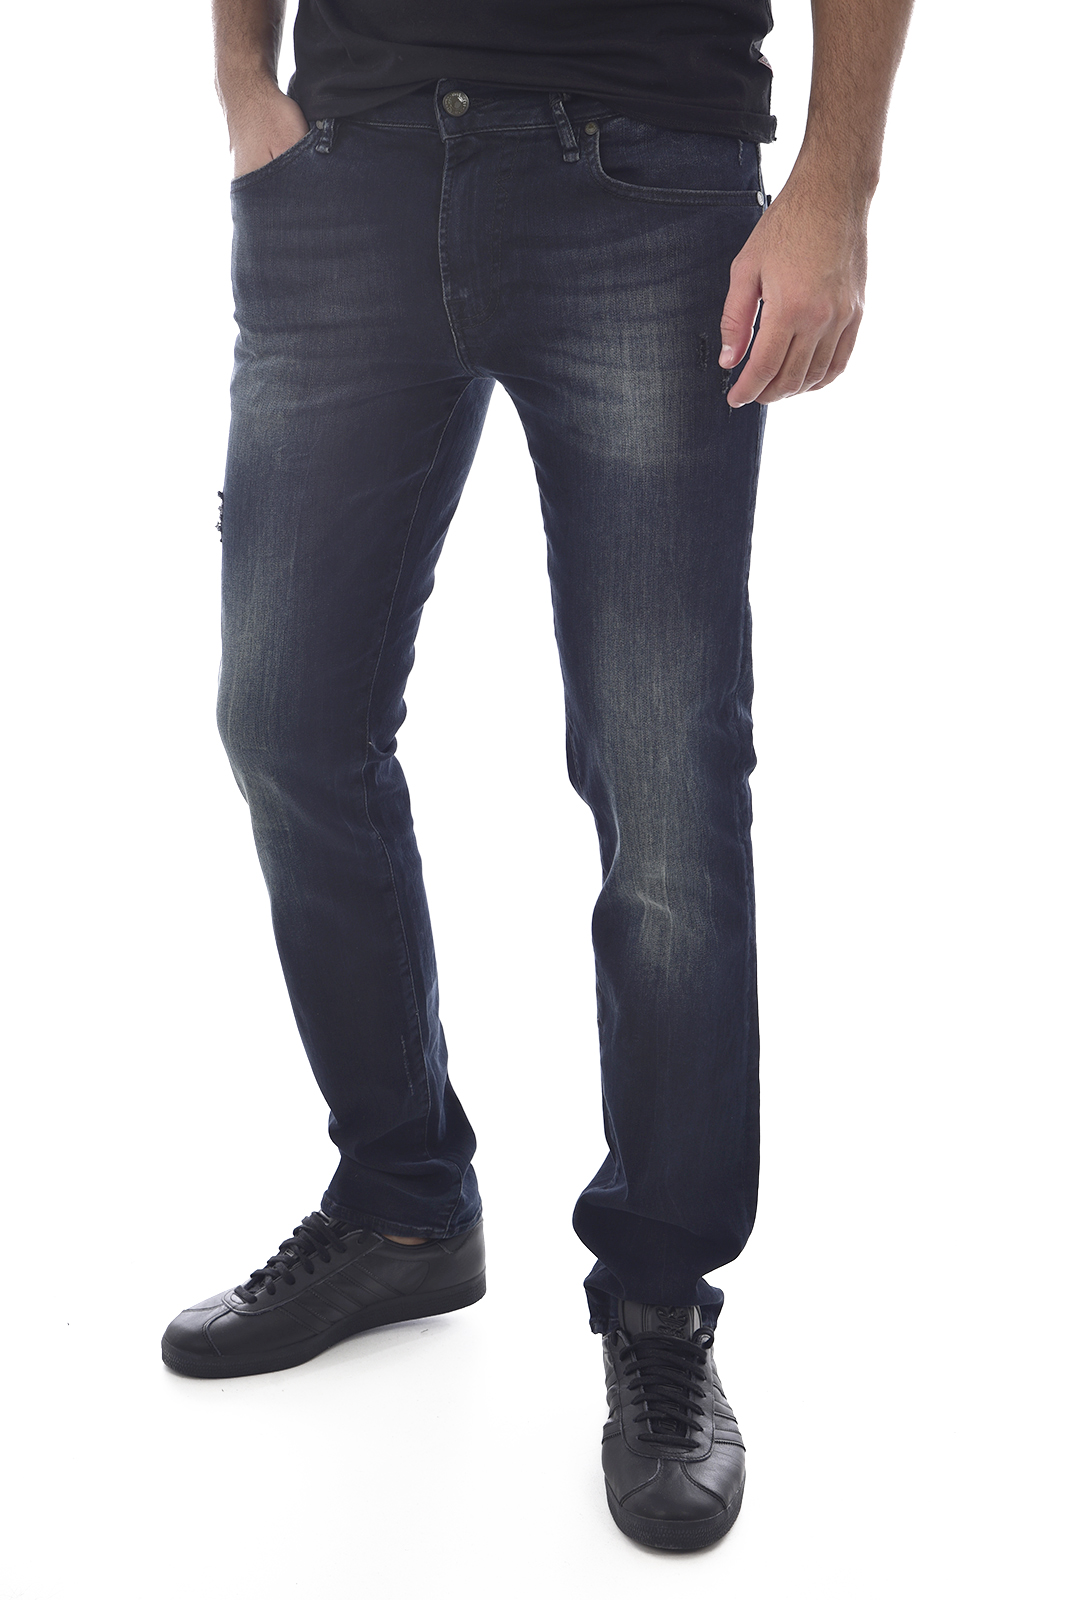 slim / skinny  Guess jeans M84AN2 D2431 ANGELS DUNK